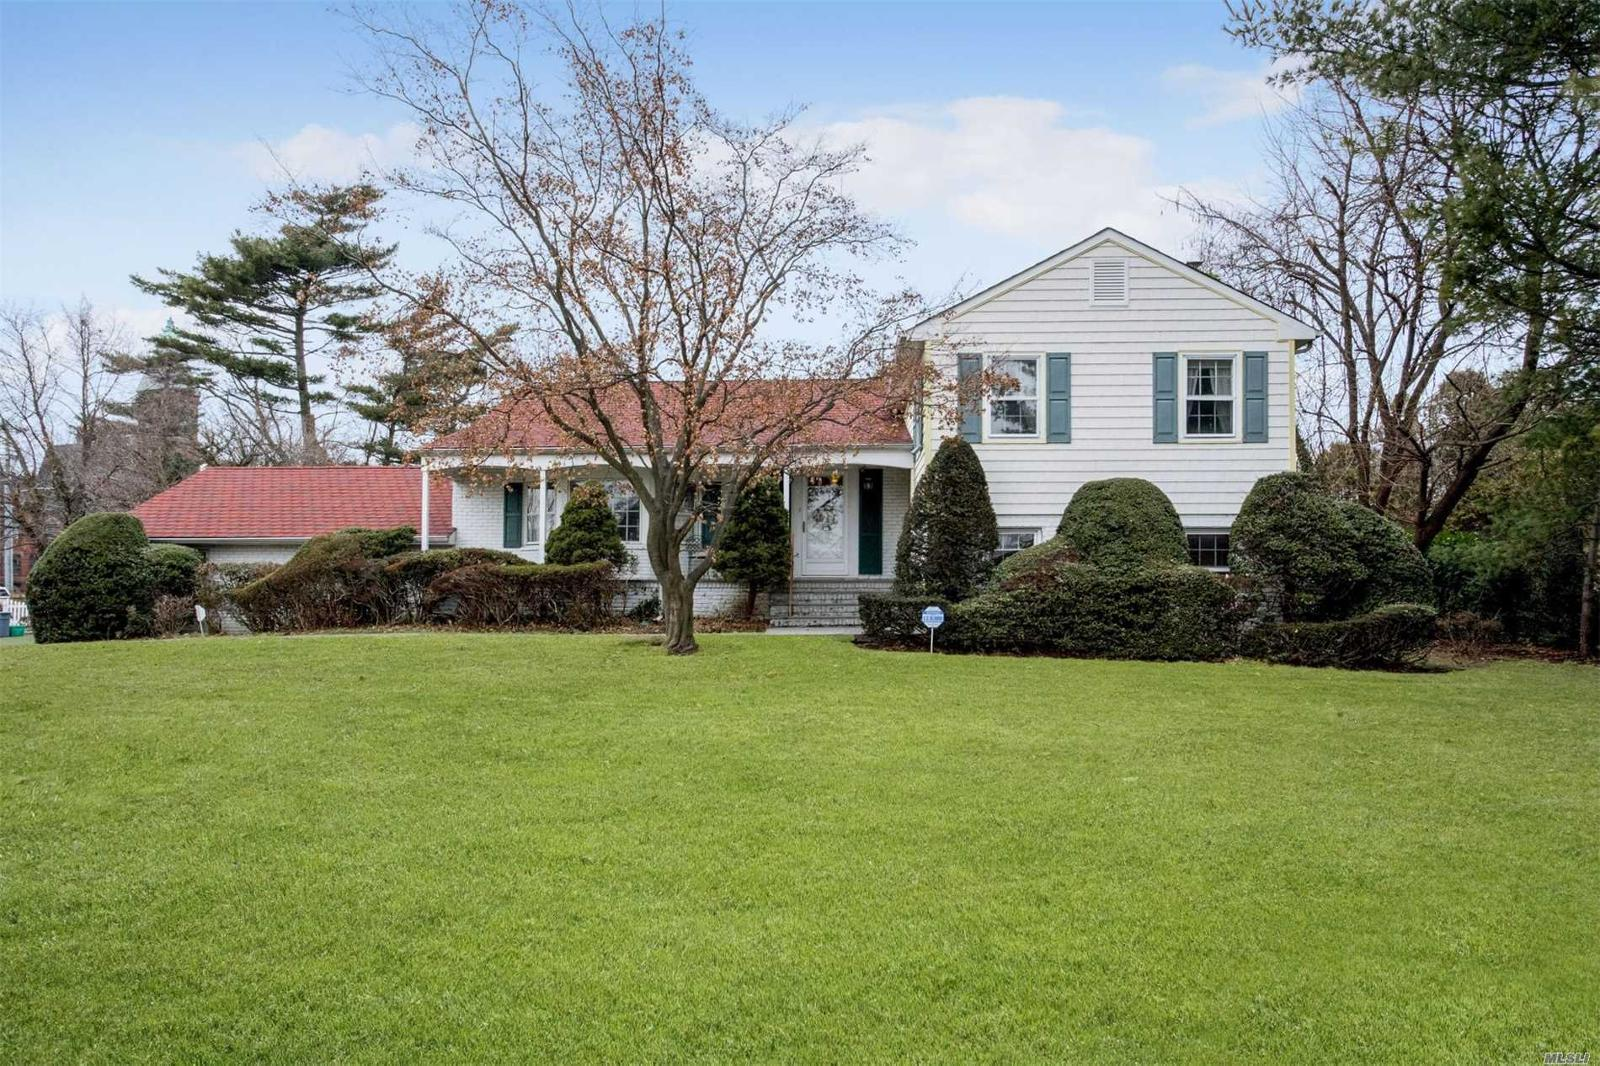 301 Stewart Ave, Garden City, NY — MLS# 3002059 — Better Homes and ...